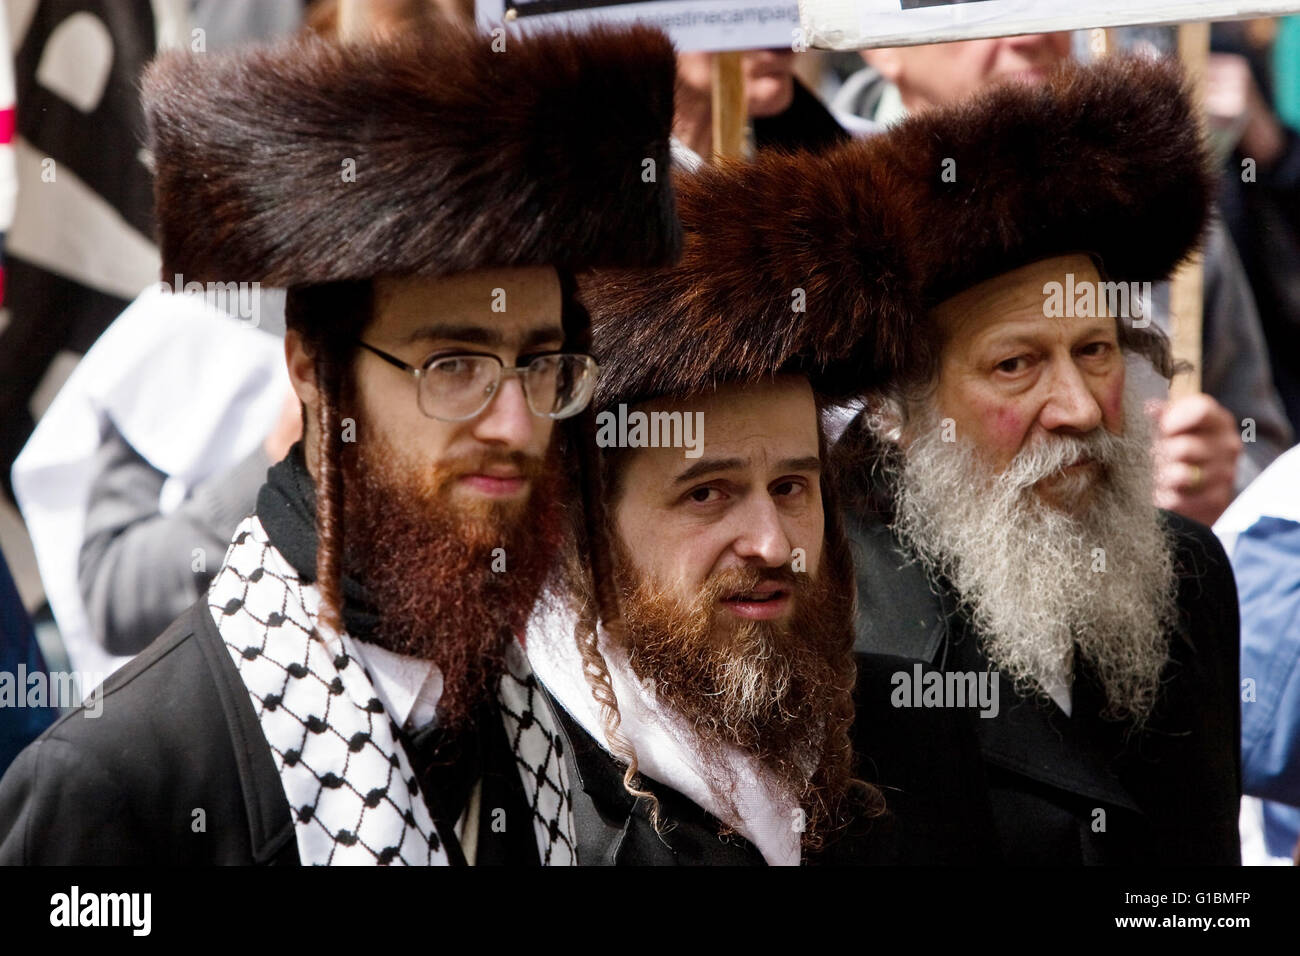 Orthodox Jews join Palestinian protesters at the Remember Gaza demonstration in London - Stock Image